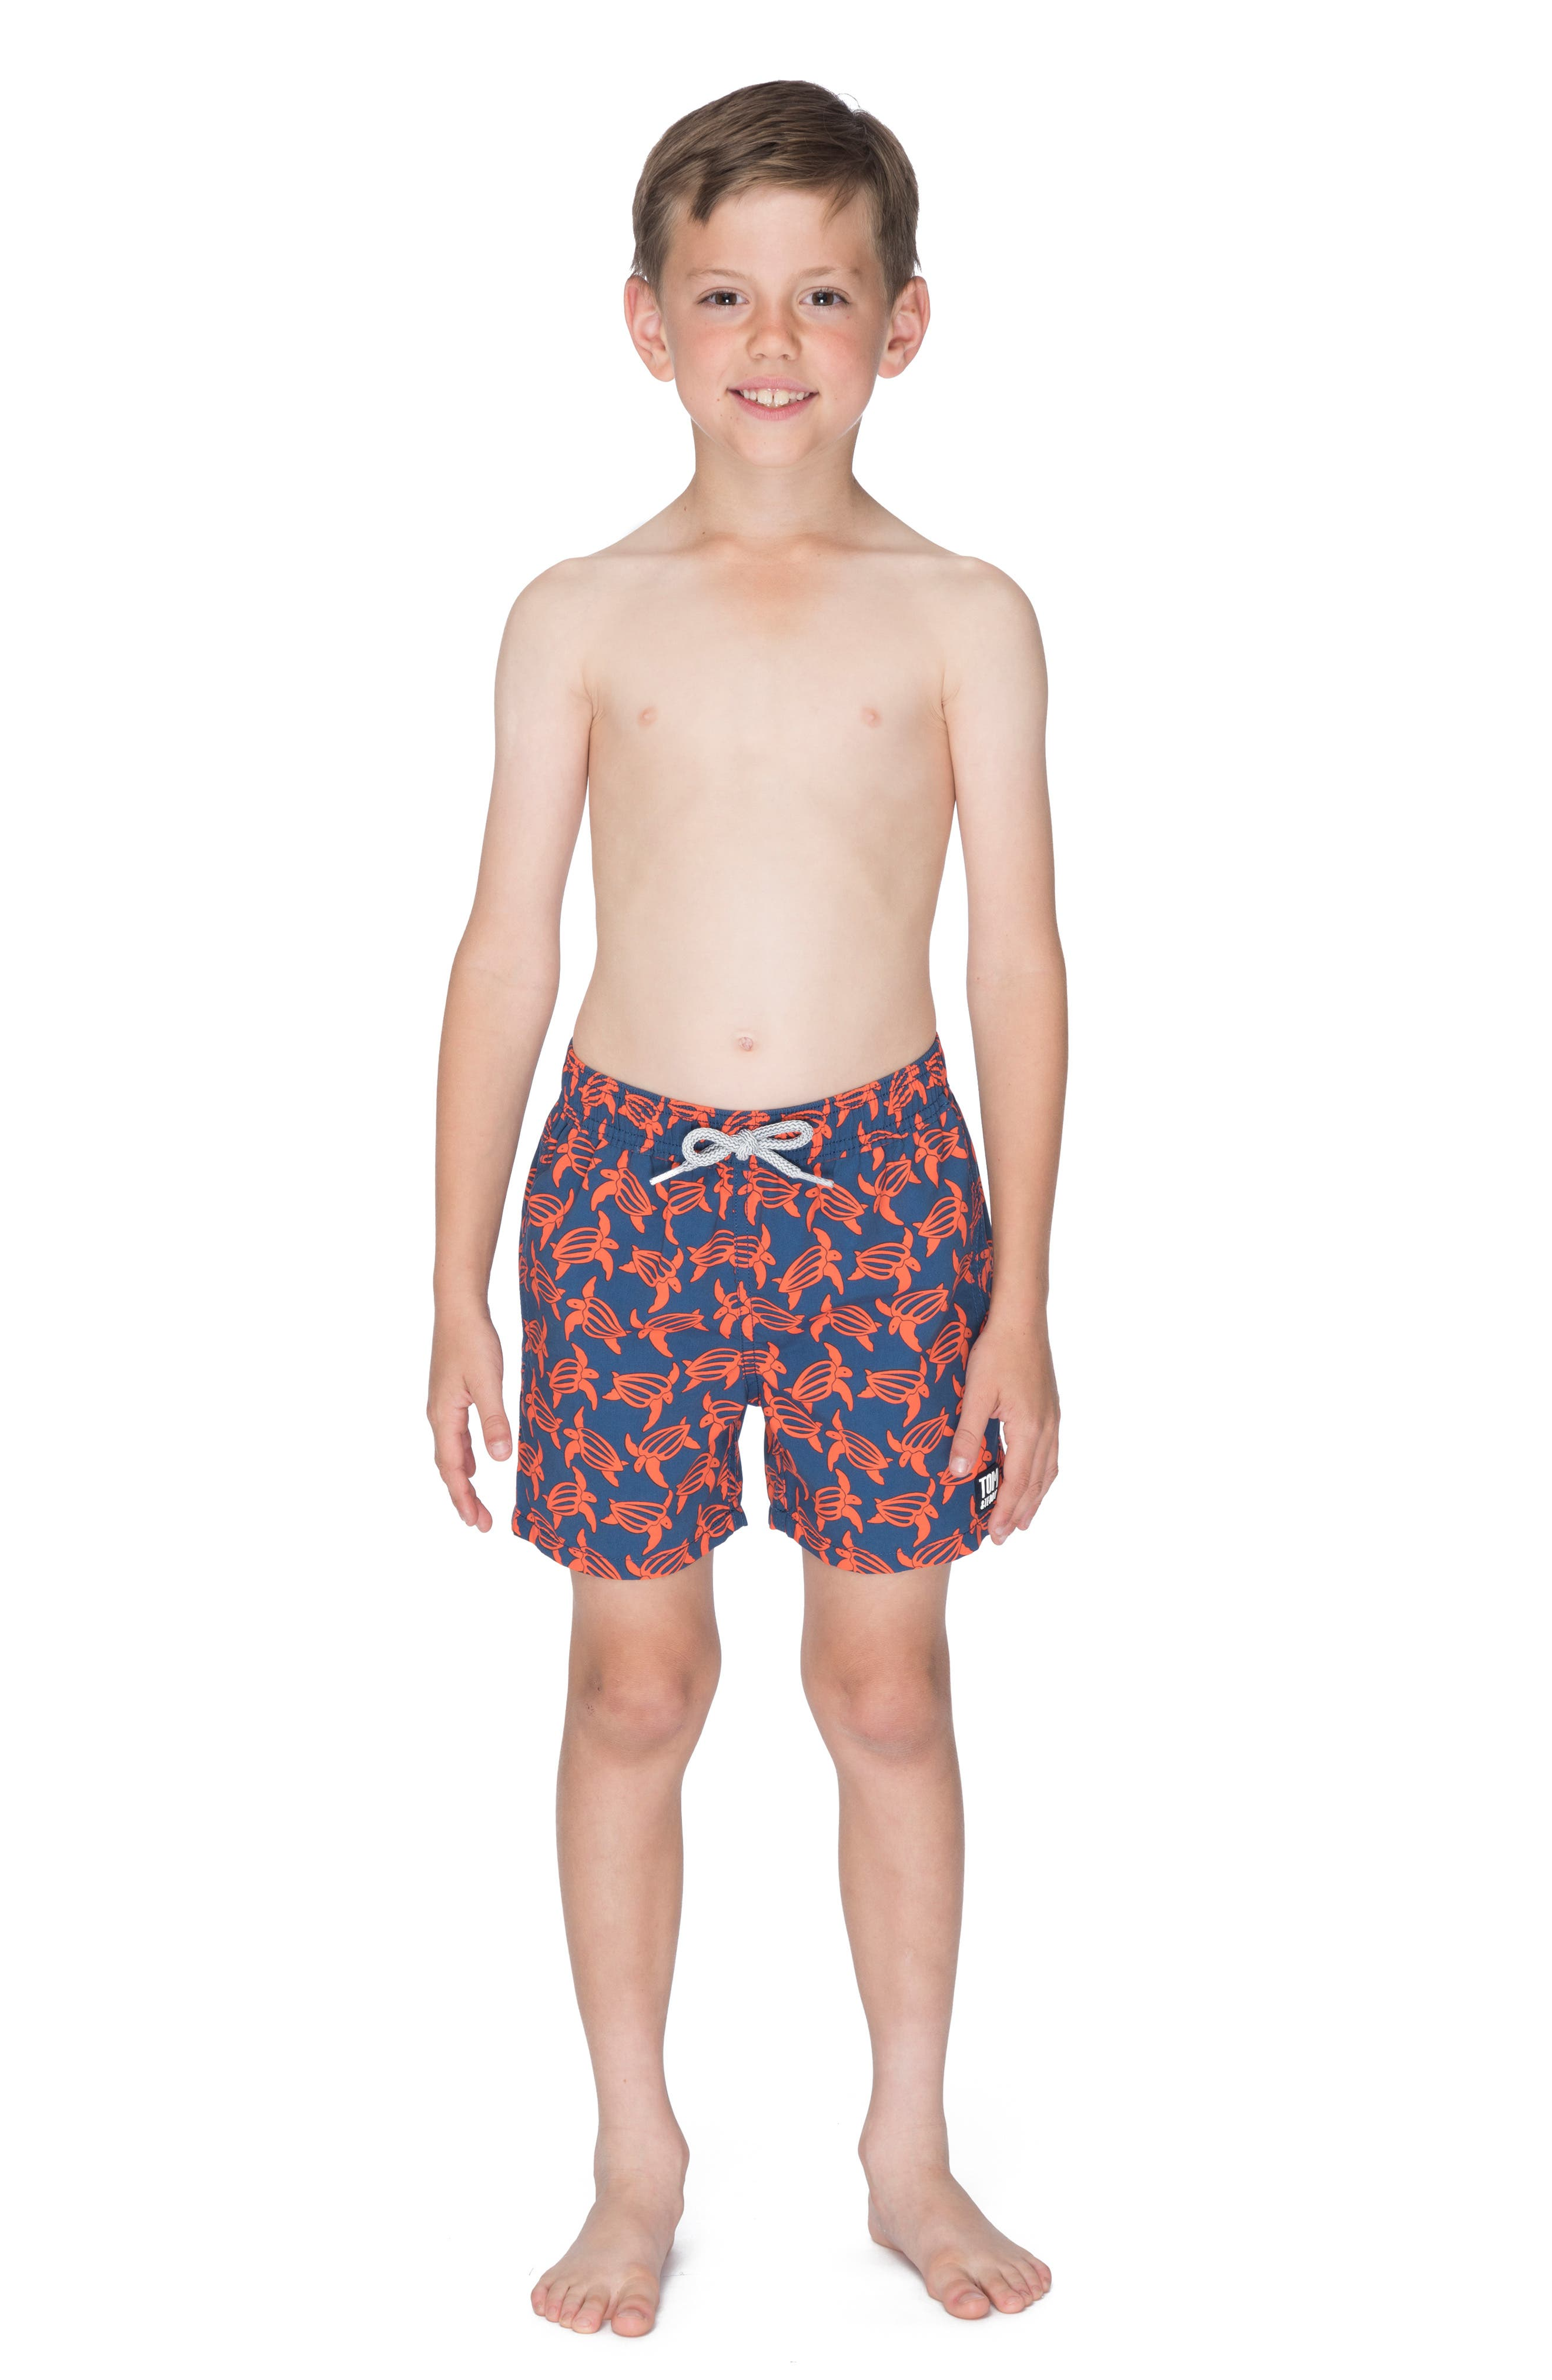 Turtle Swim Trunks,                             Alternate thumbnail 2, color,                             NAVY/ ORANGE